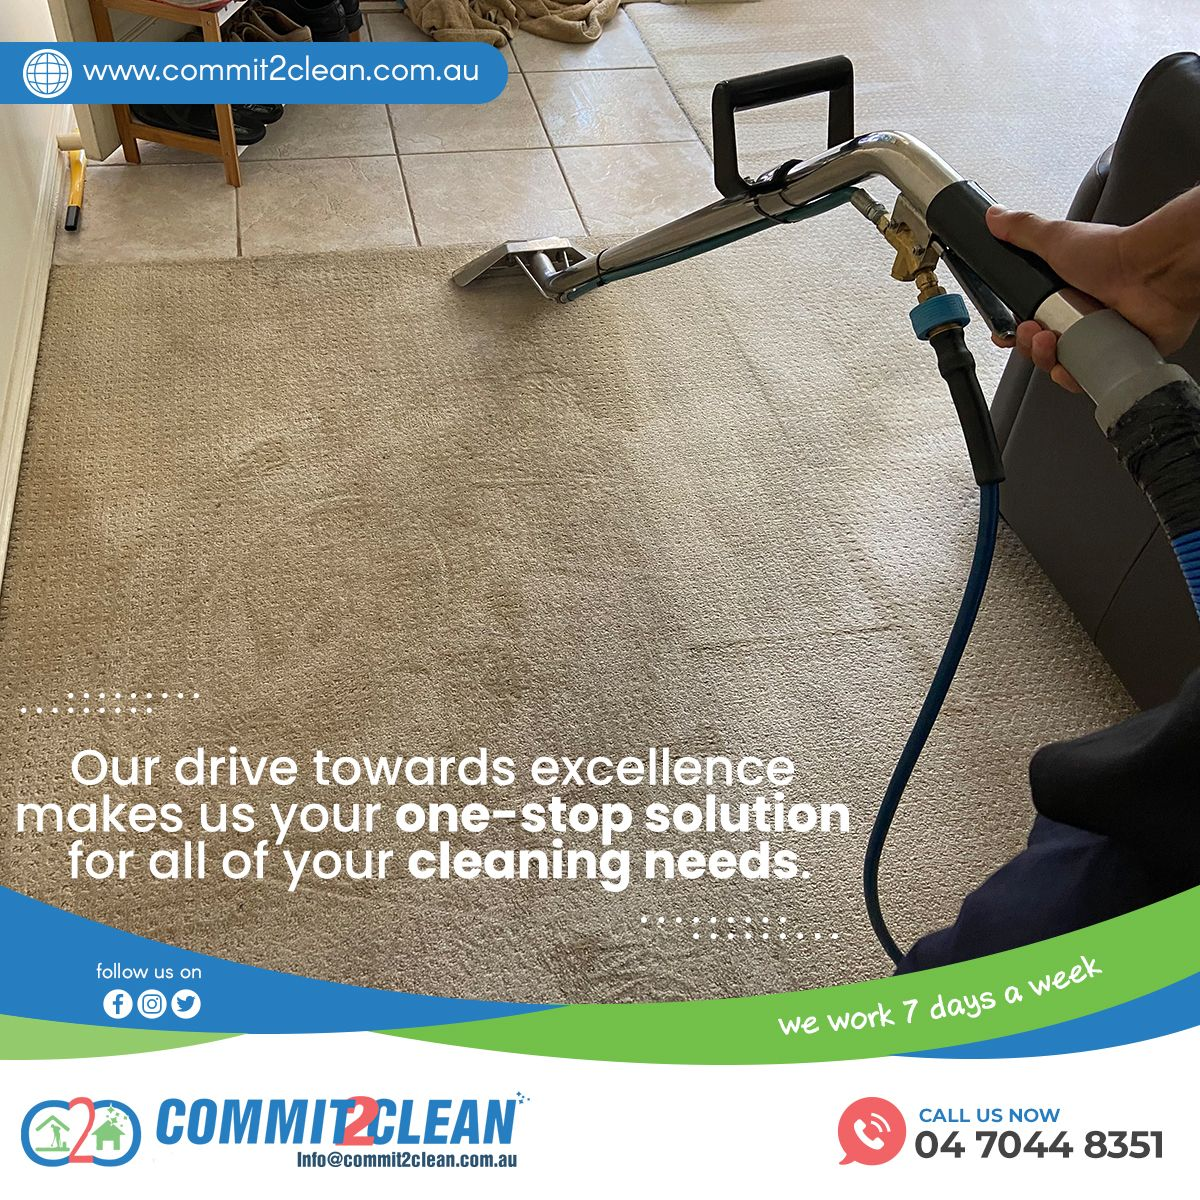 Commit2clean Cleaning Services Melbourne In 2020 Cleaning Steam Clean Carpet How To Clean Carpet